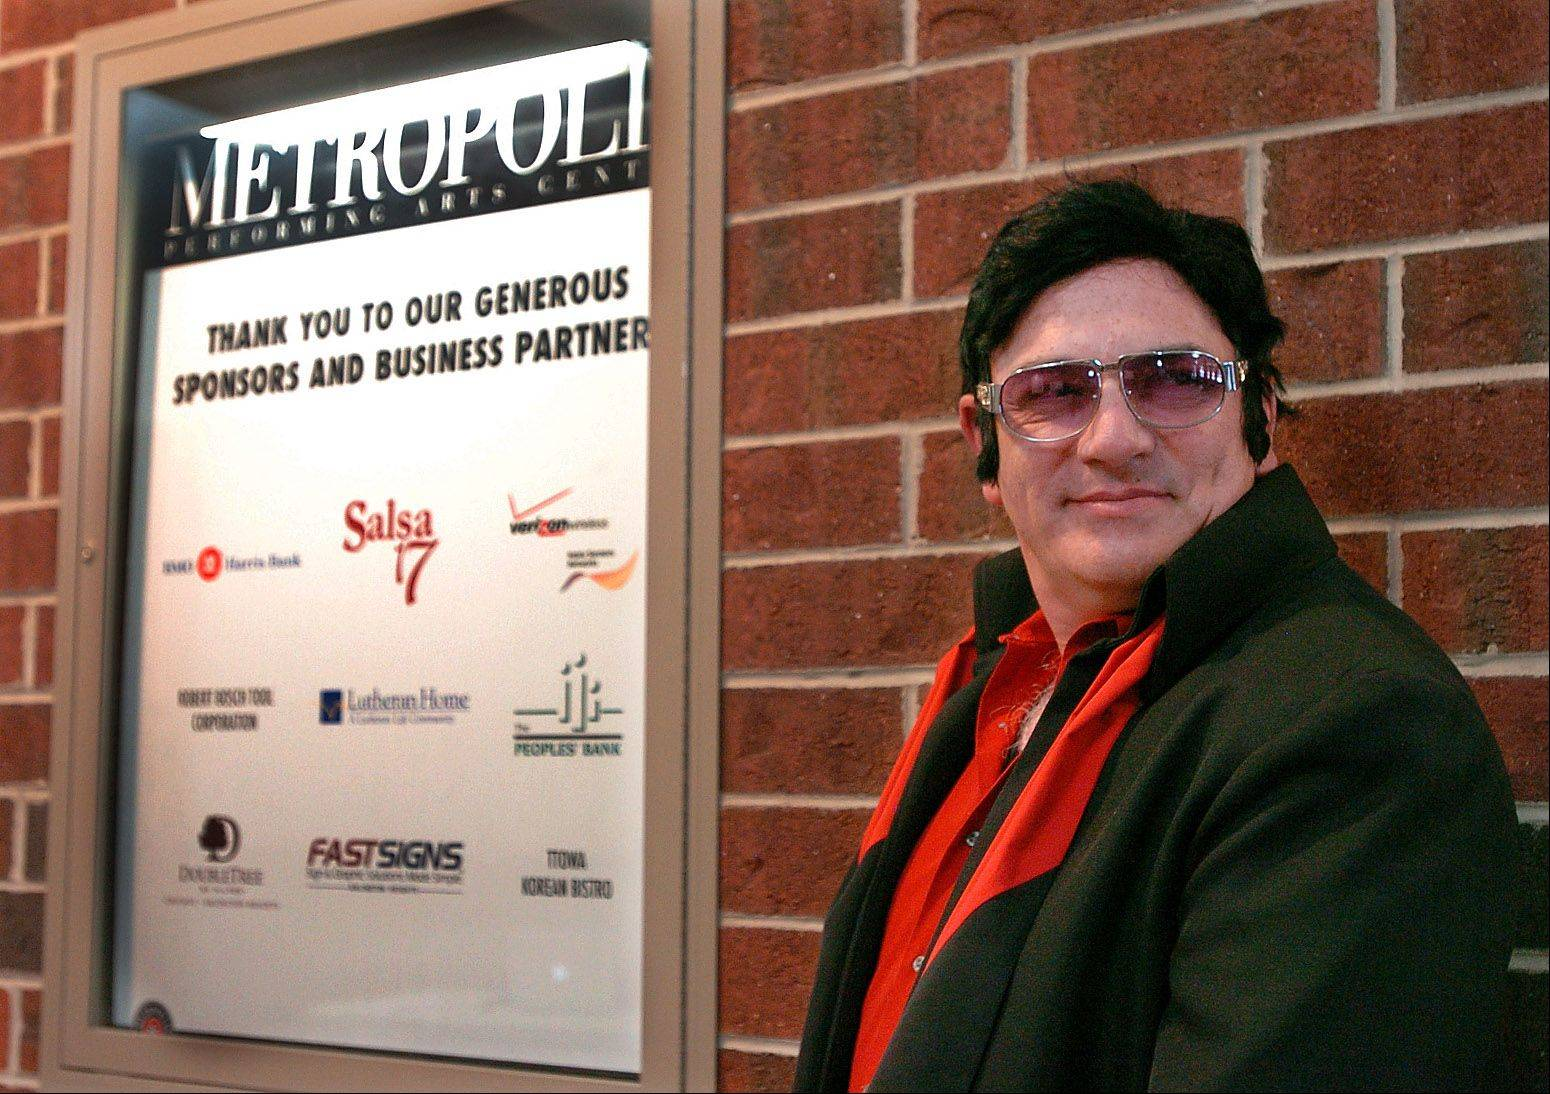 Elivis impersonator John Peterson of Schaumburg waits his turn to audition for Suburban Chicago's Got Talent at the Metropolis Performing Arts Centre.